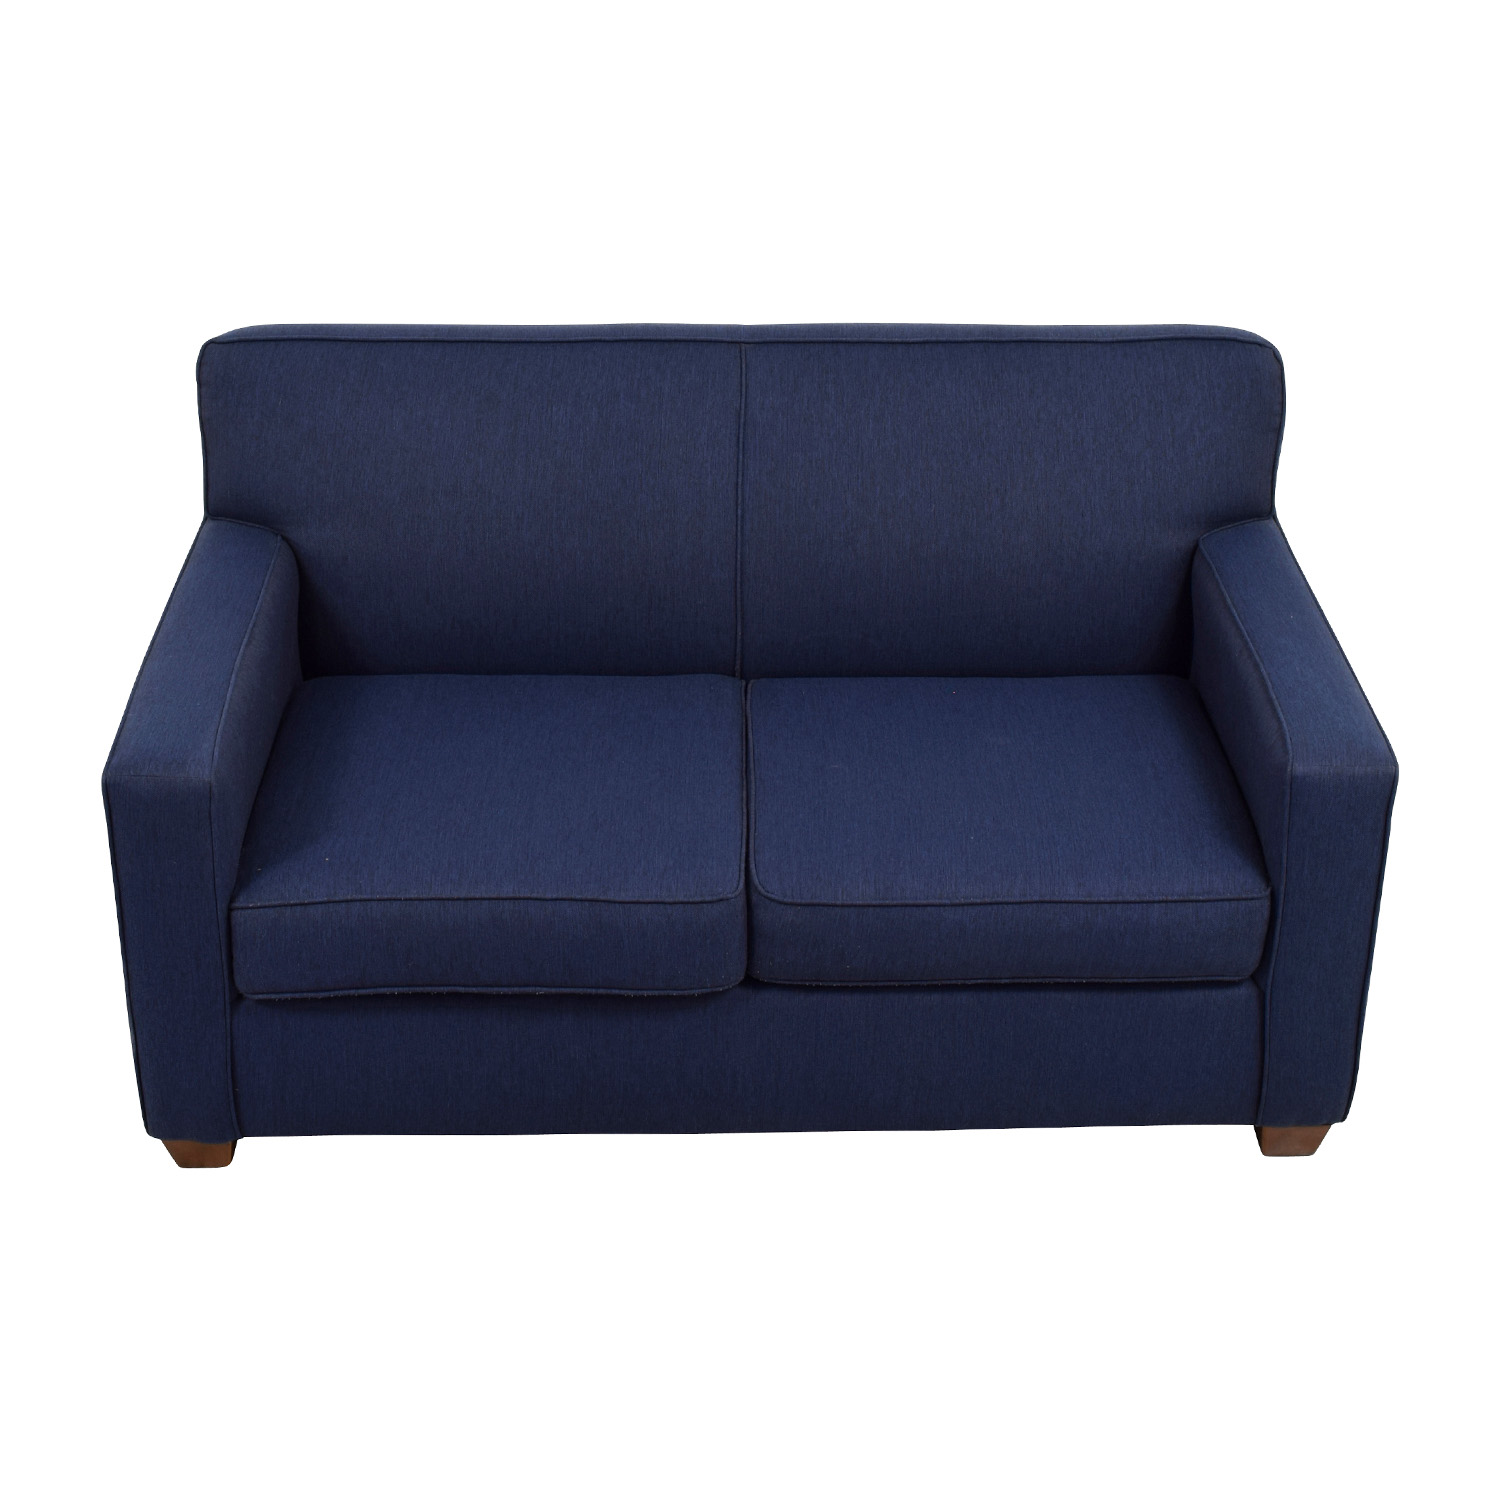 Amazing 52 Off West Elm West Elm Blue Loveseat Sofas Caraccident5 Cool Chair Designs And Ideas Caraccident5Info